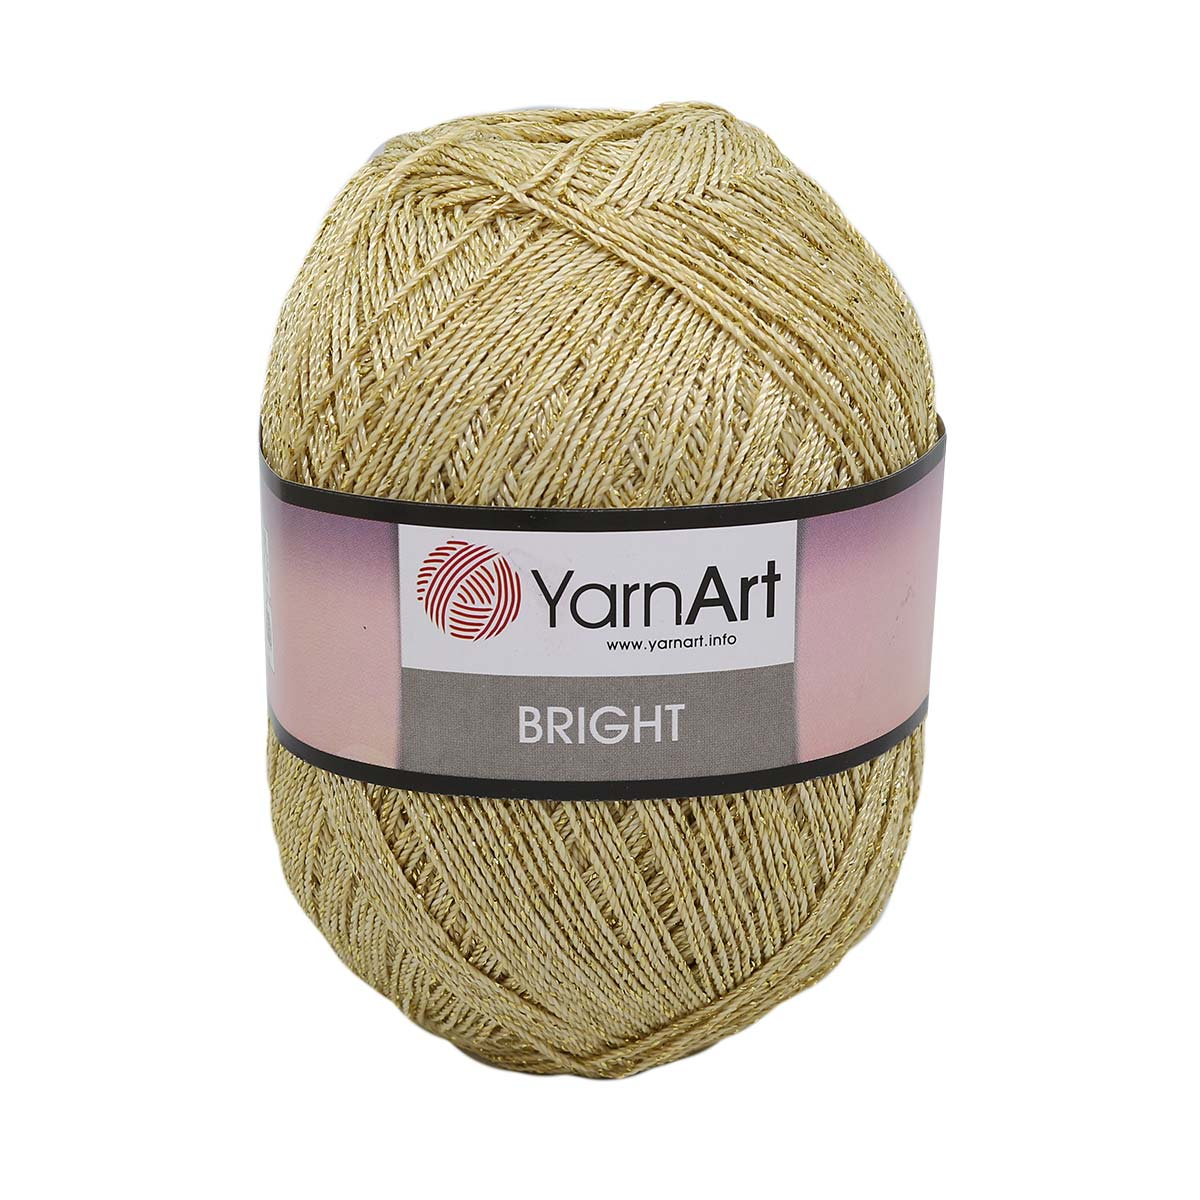 Пряжа YarnArt 'Bright' 90гр 340м (80% полиамид, 20% металлик)